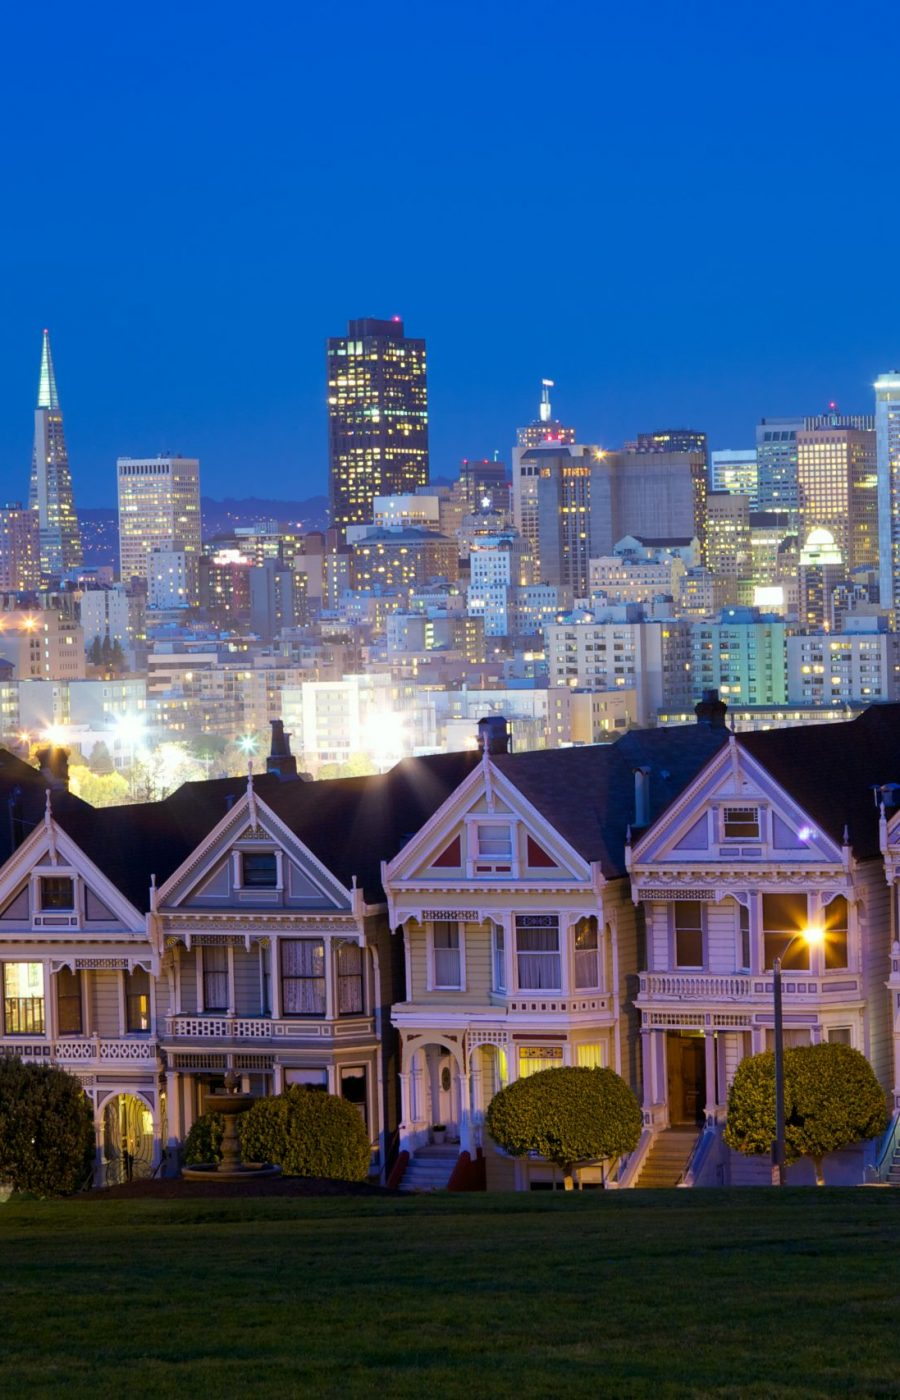 Alamo square and San Francisco skyline at dusk, California, USA